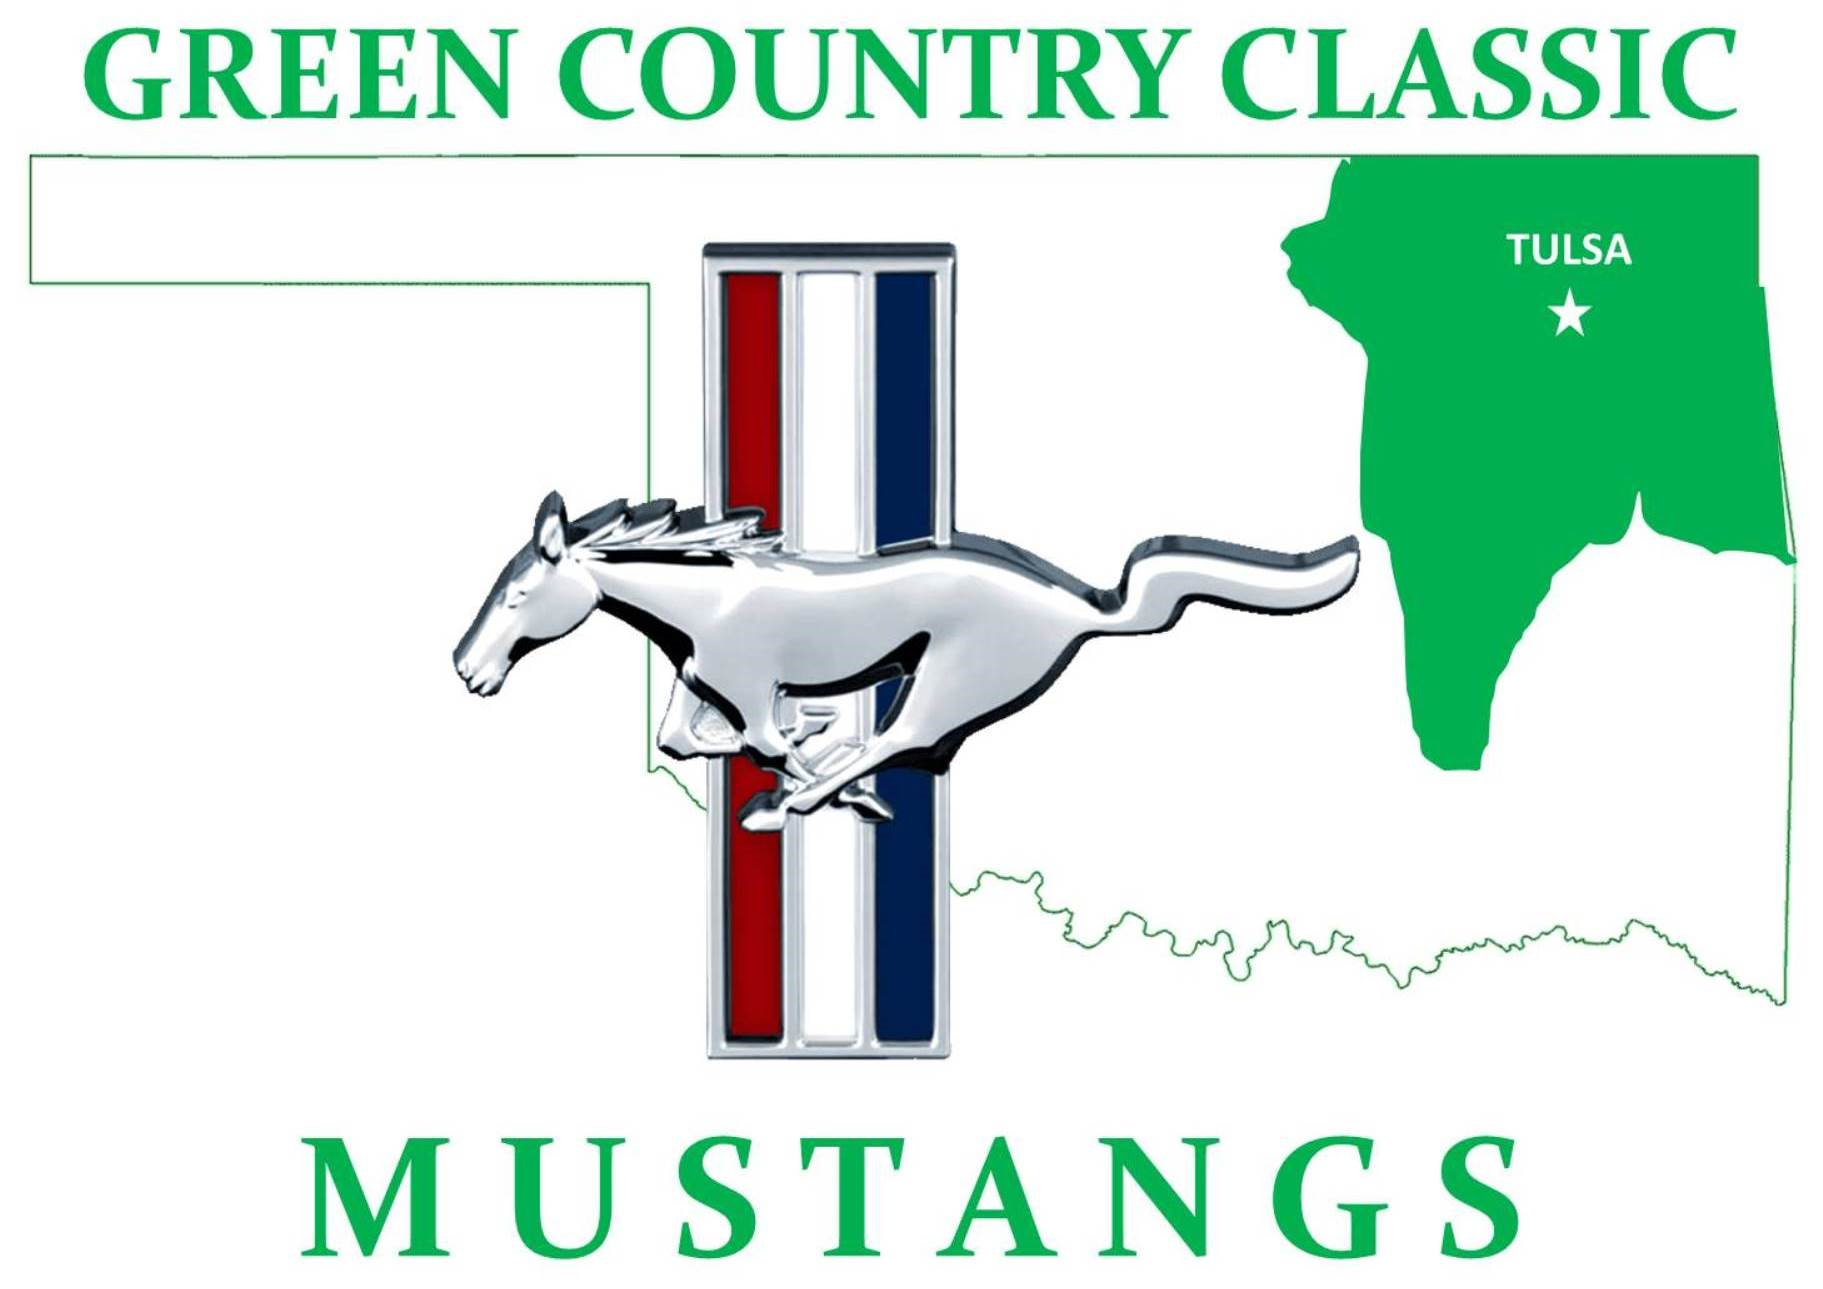 Green Country Classic Mustangs logo